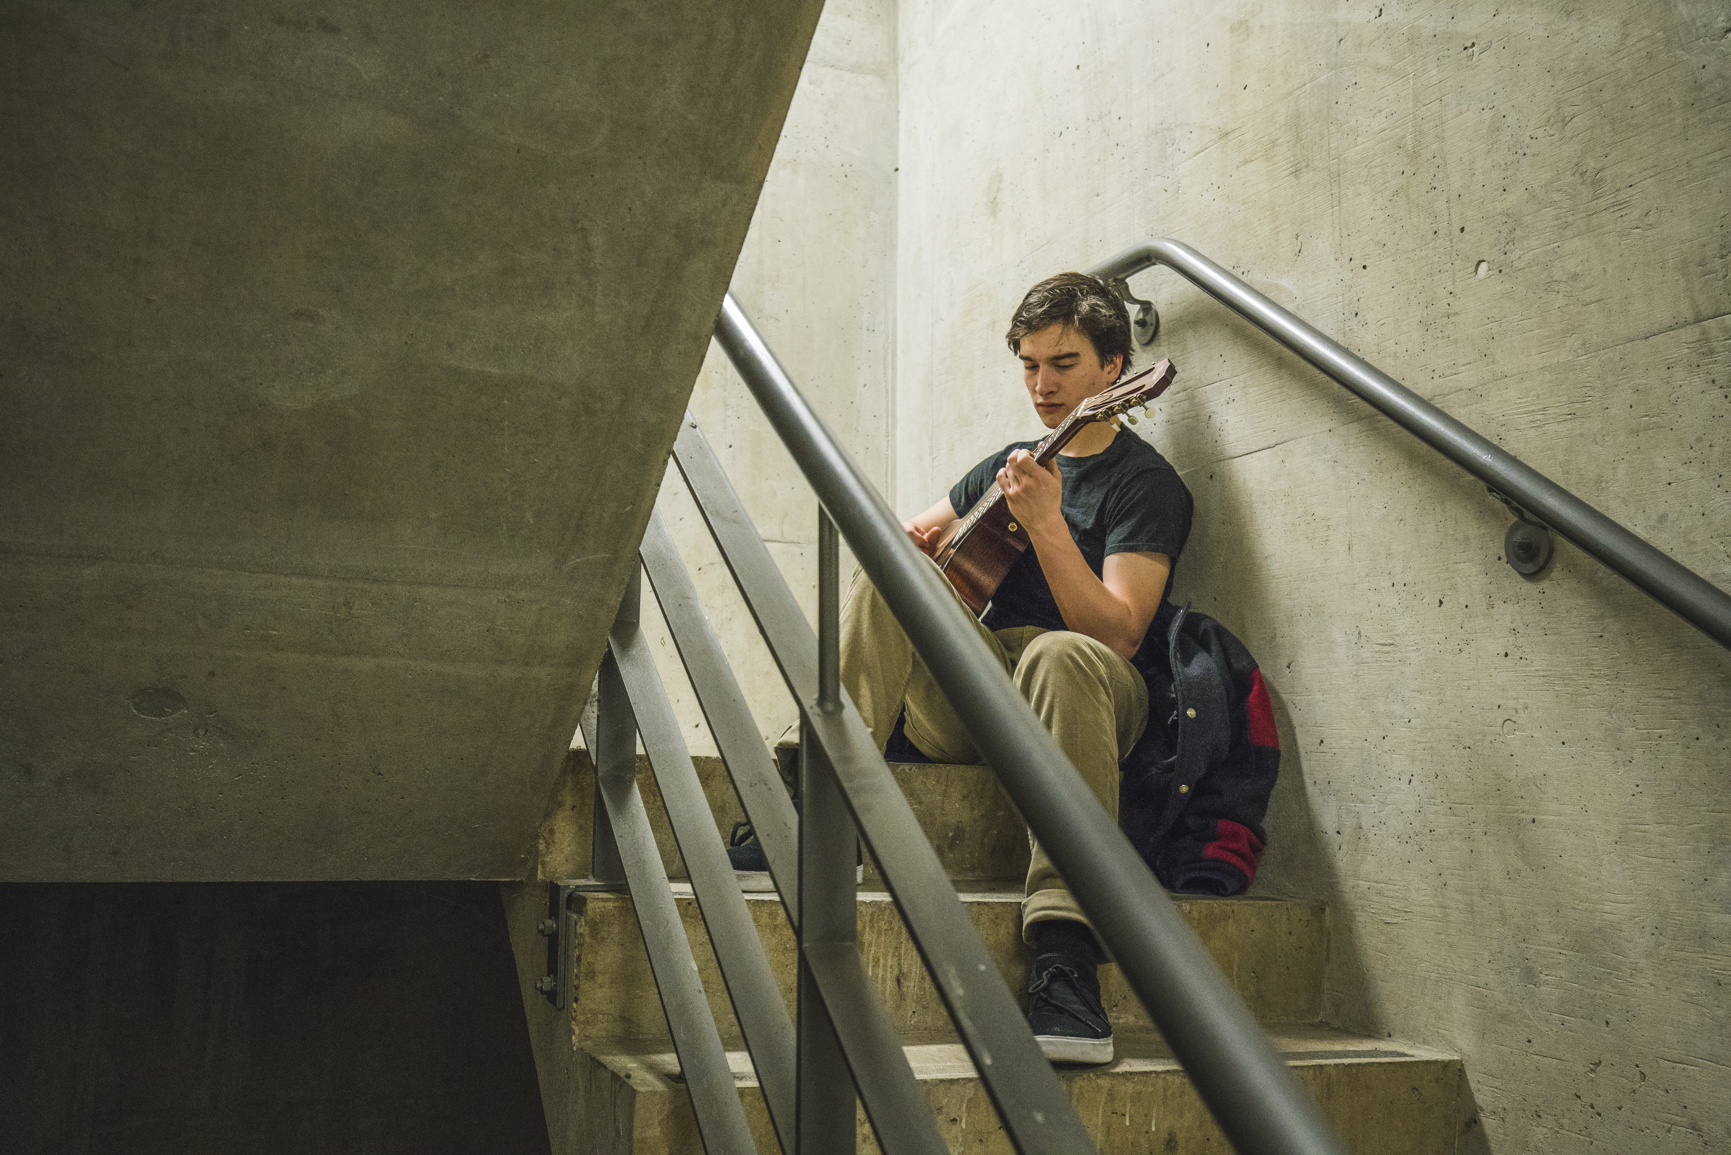 Robby playing his guitar in a stairwell at UBC Vancouver.